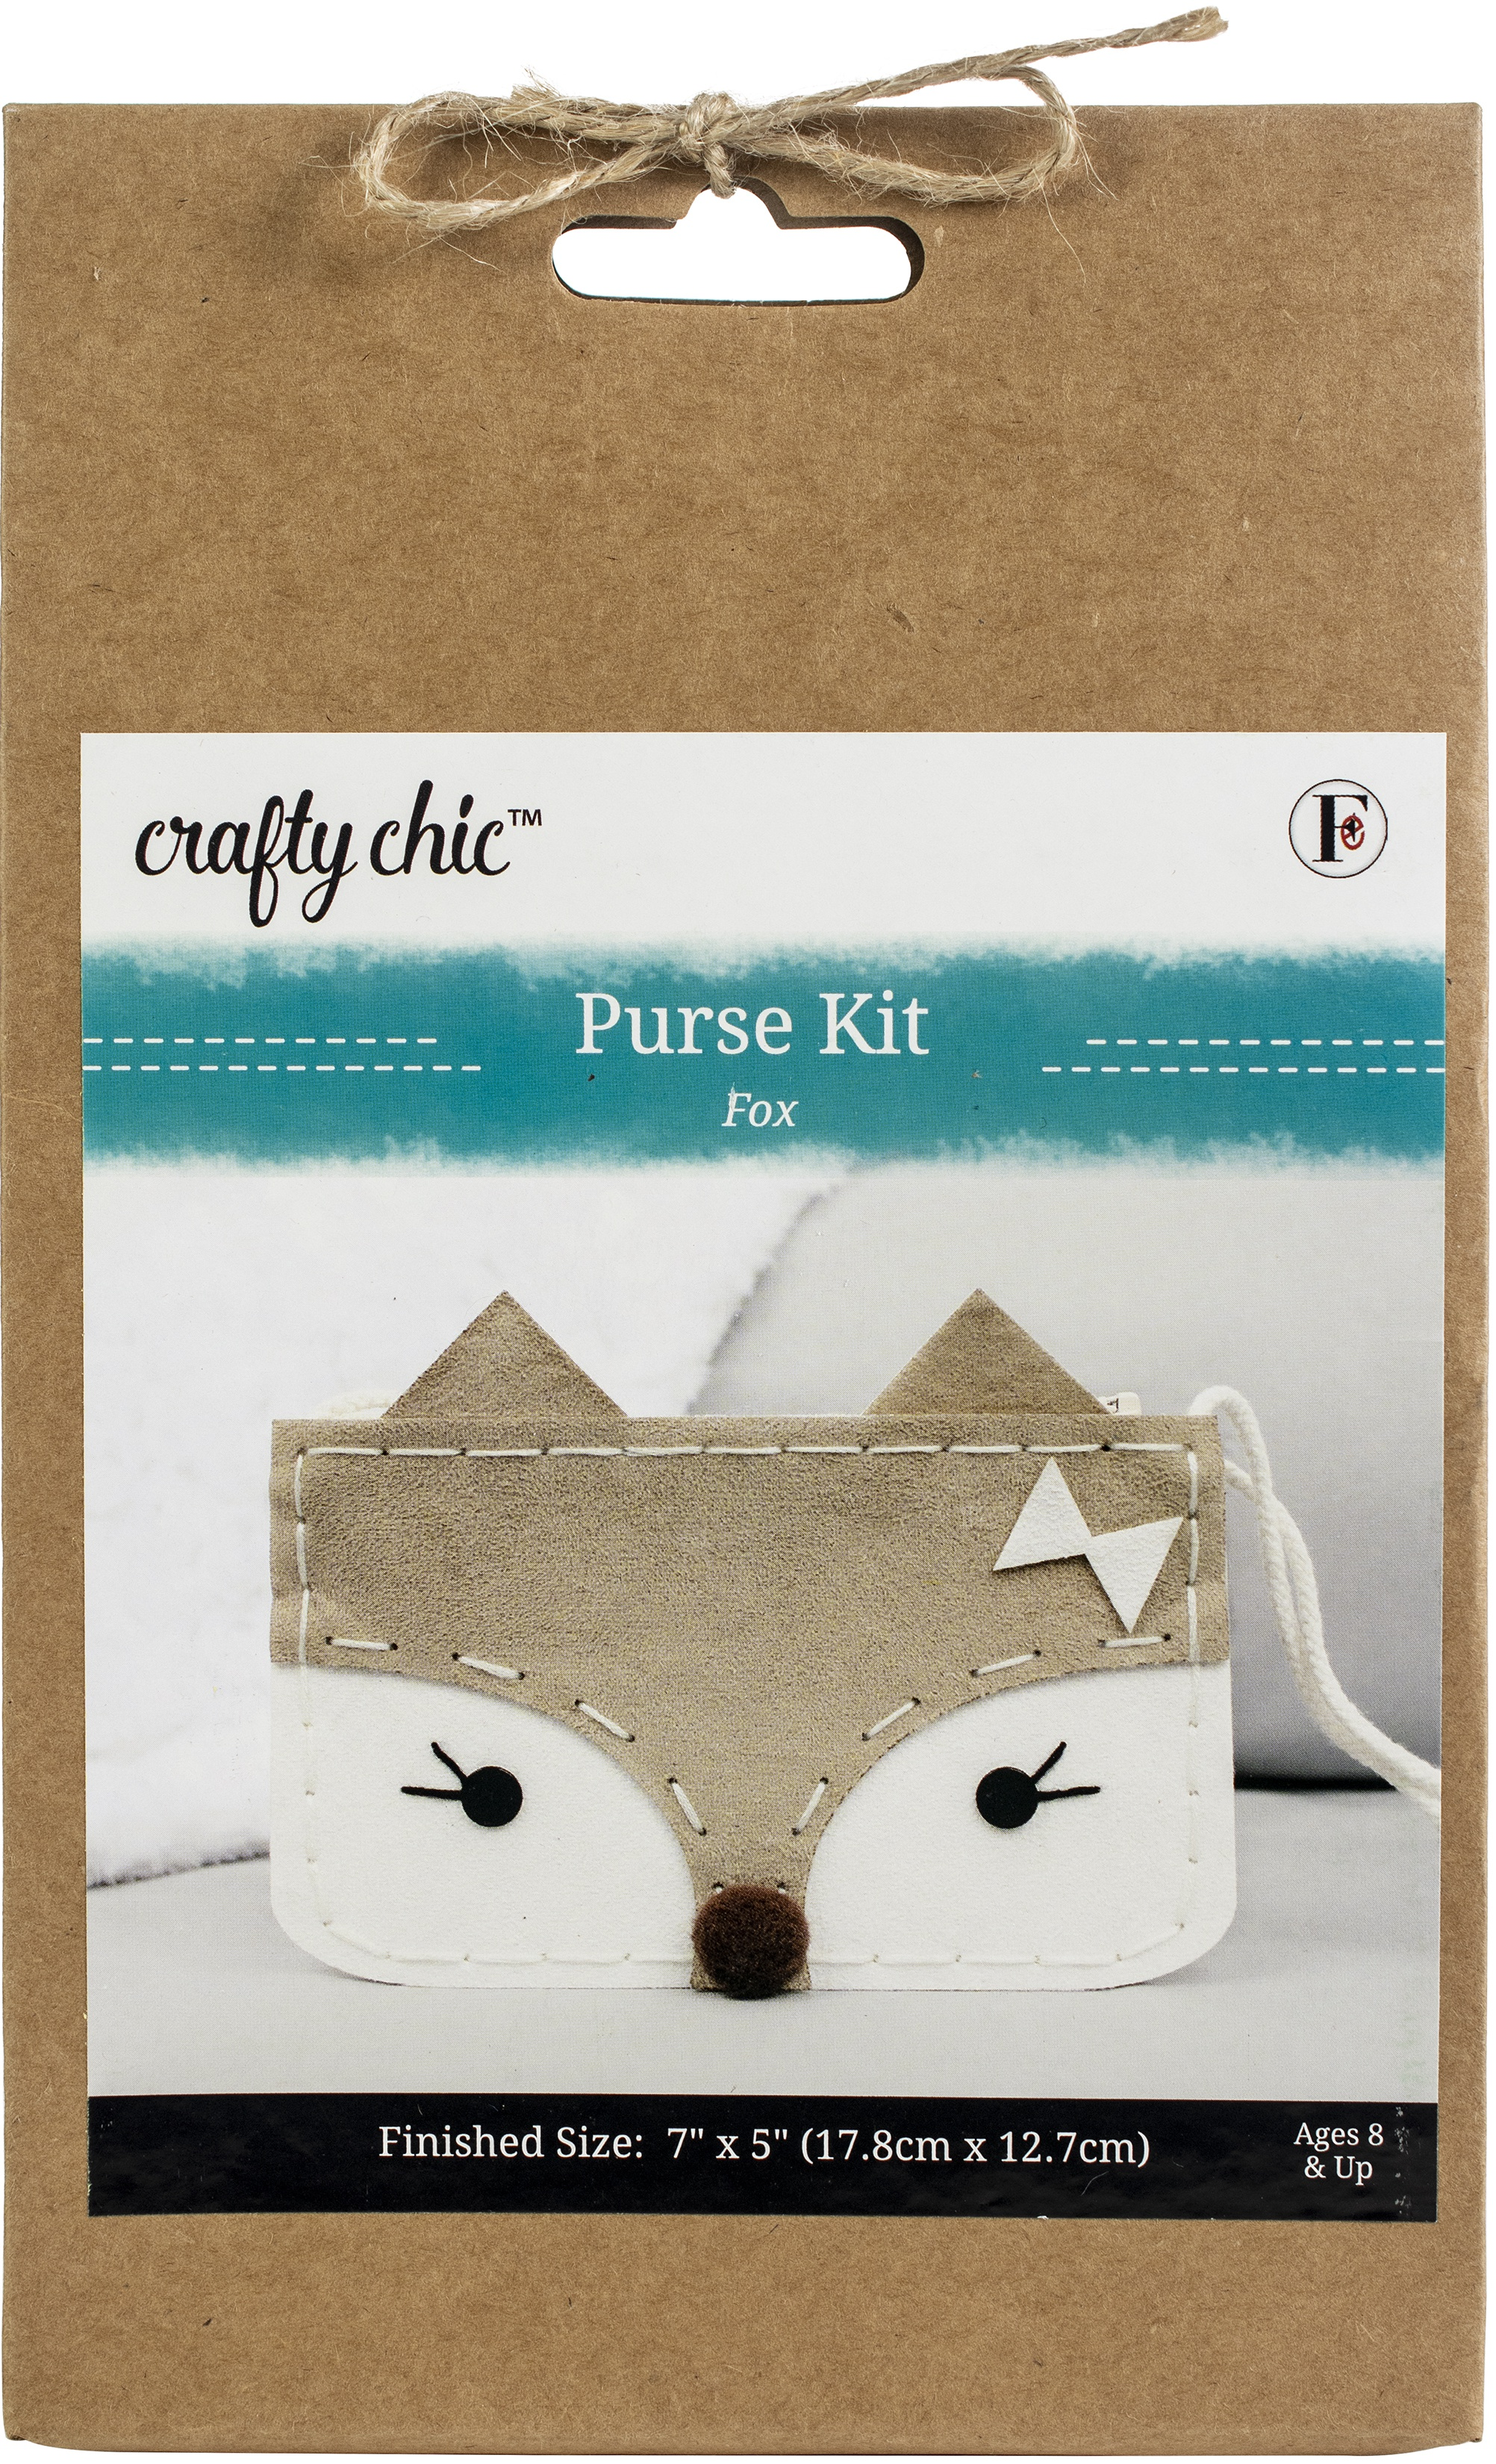 Fabric Editions Needle Creations Felt Bag Kit-All Eyes On You Fox